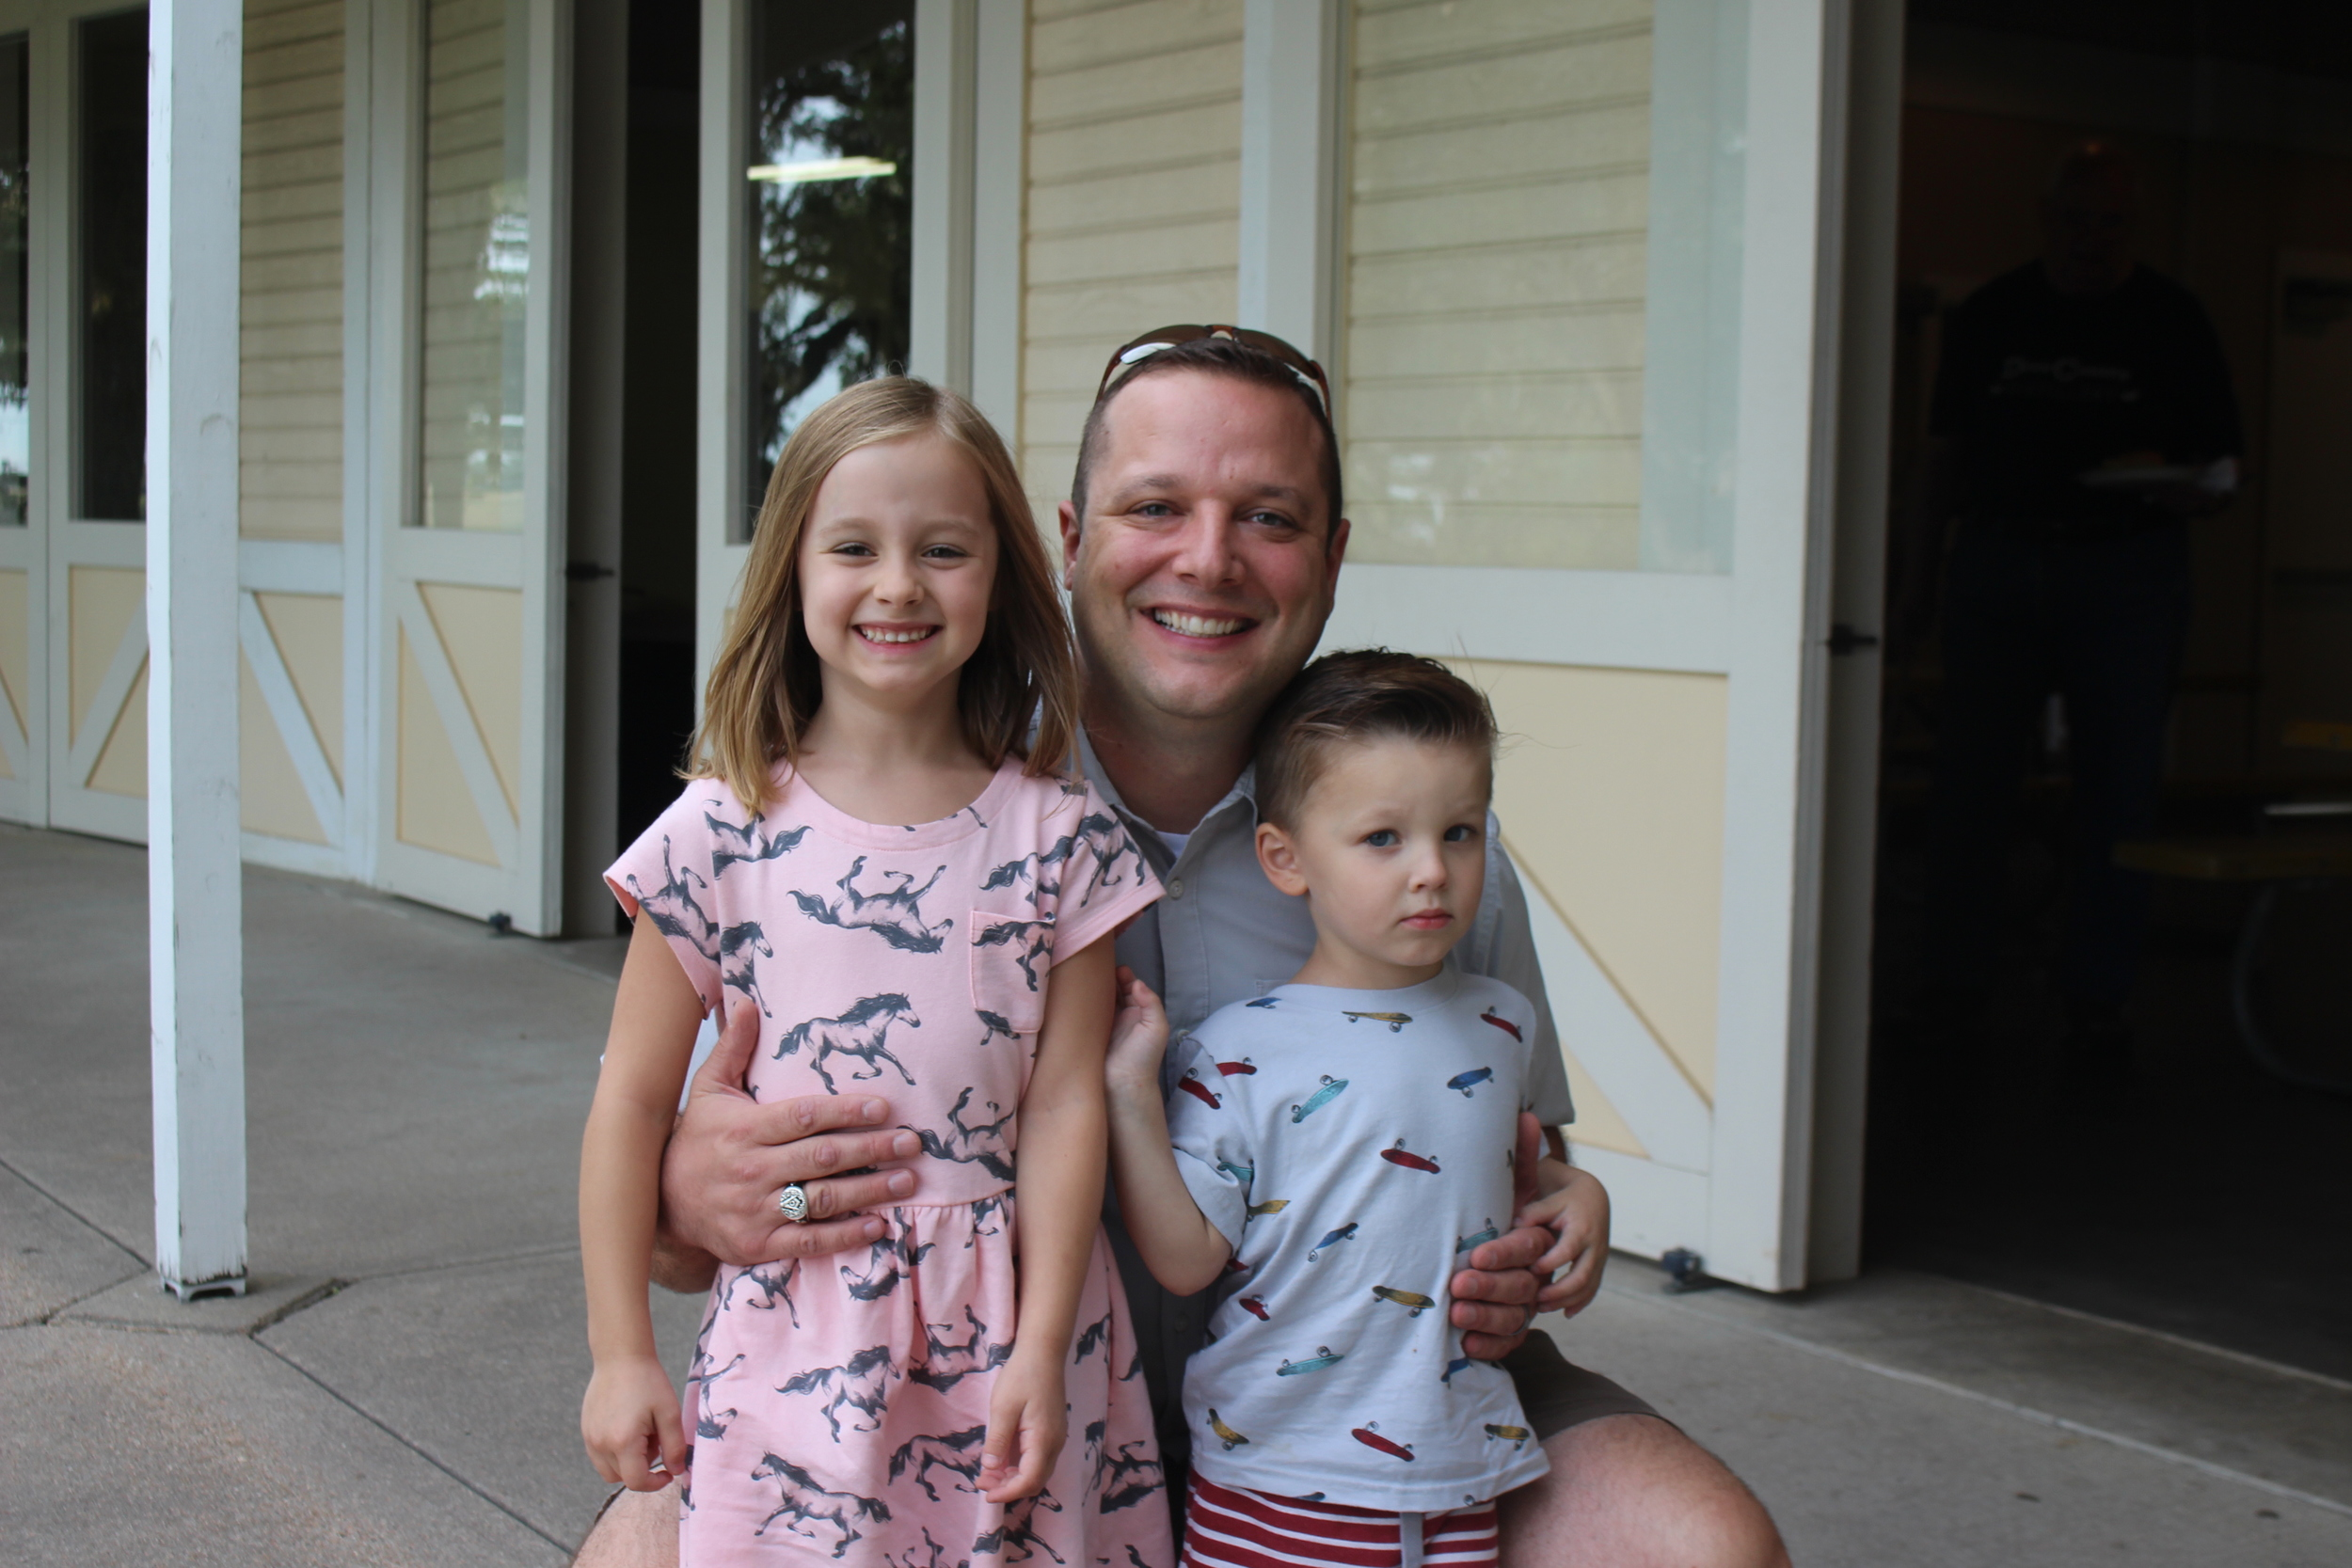 Andrew Muska and his kids